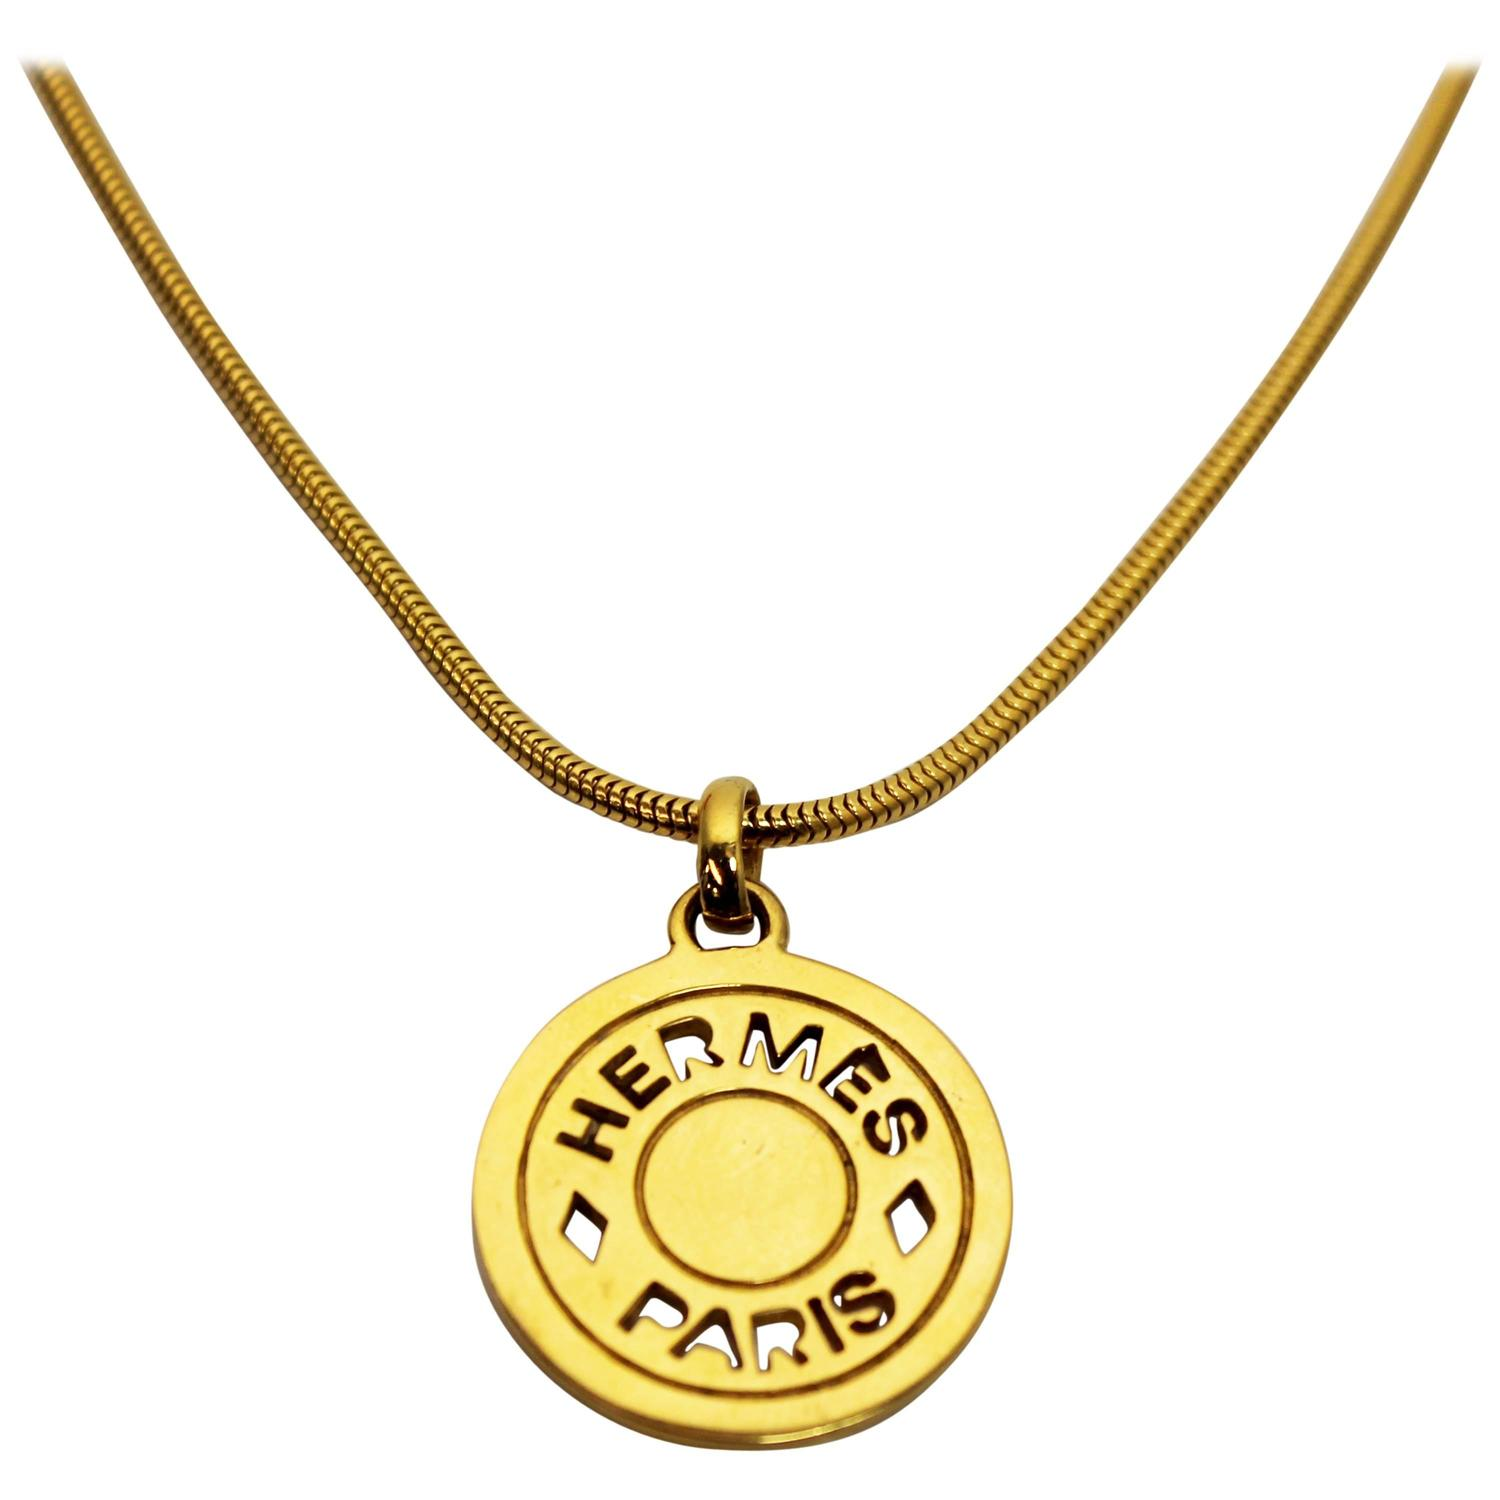 1990 s hermes gold coin pendant necklace at 1stdibs